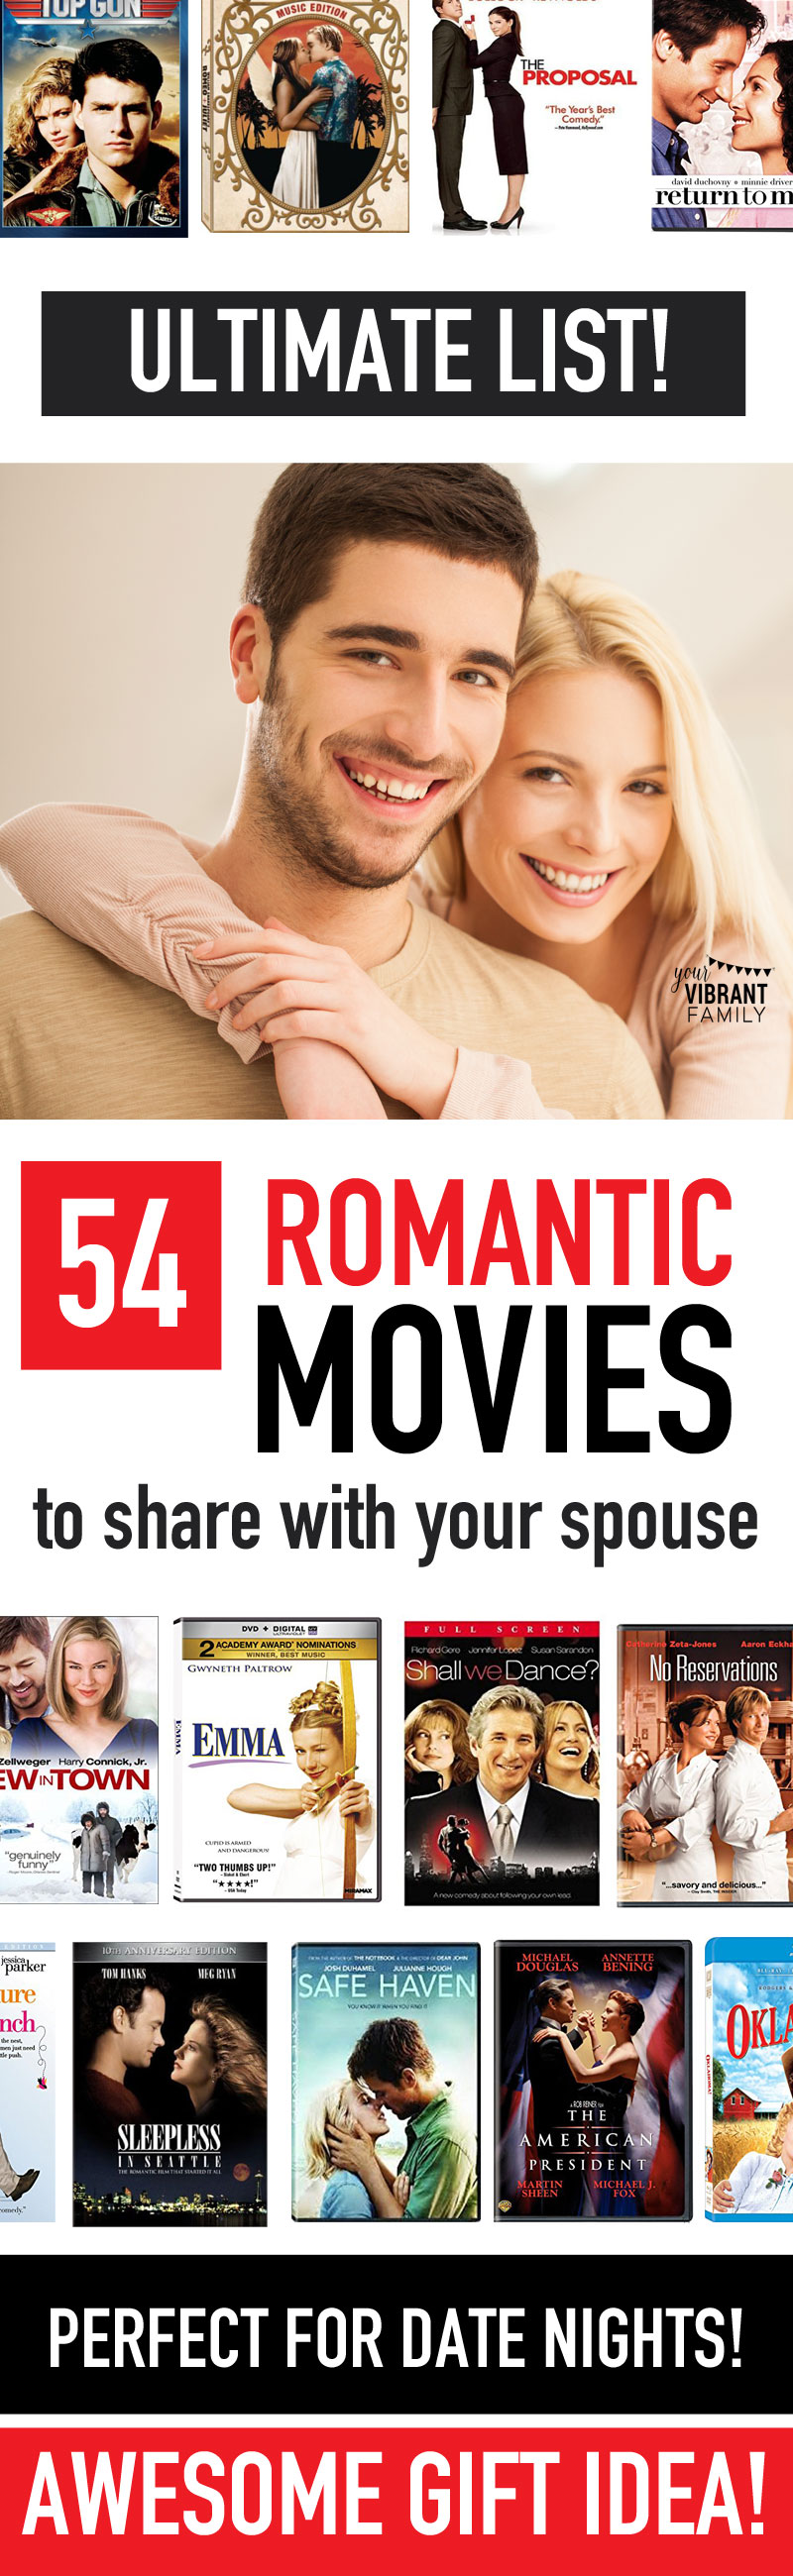 Romantic Stay Home Anniversary Ideas